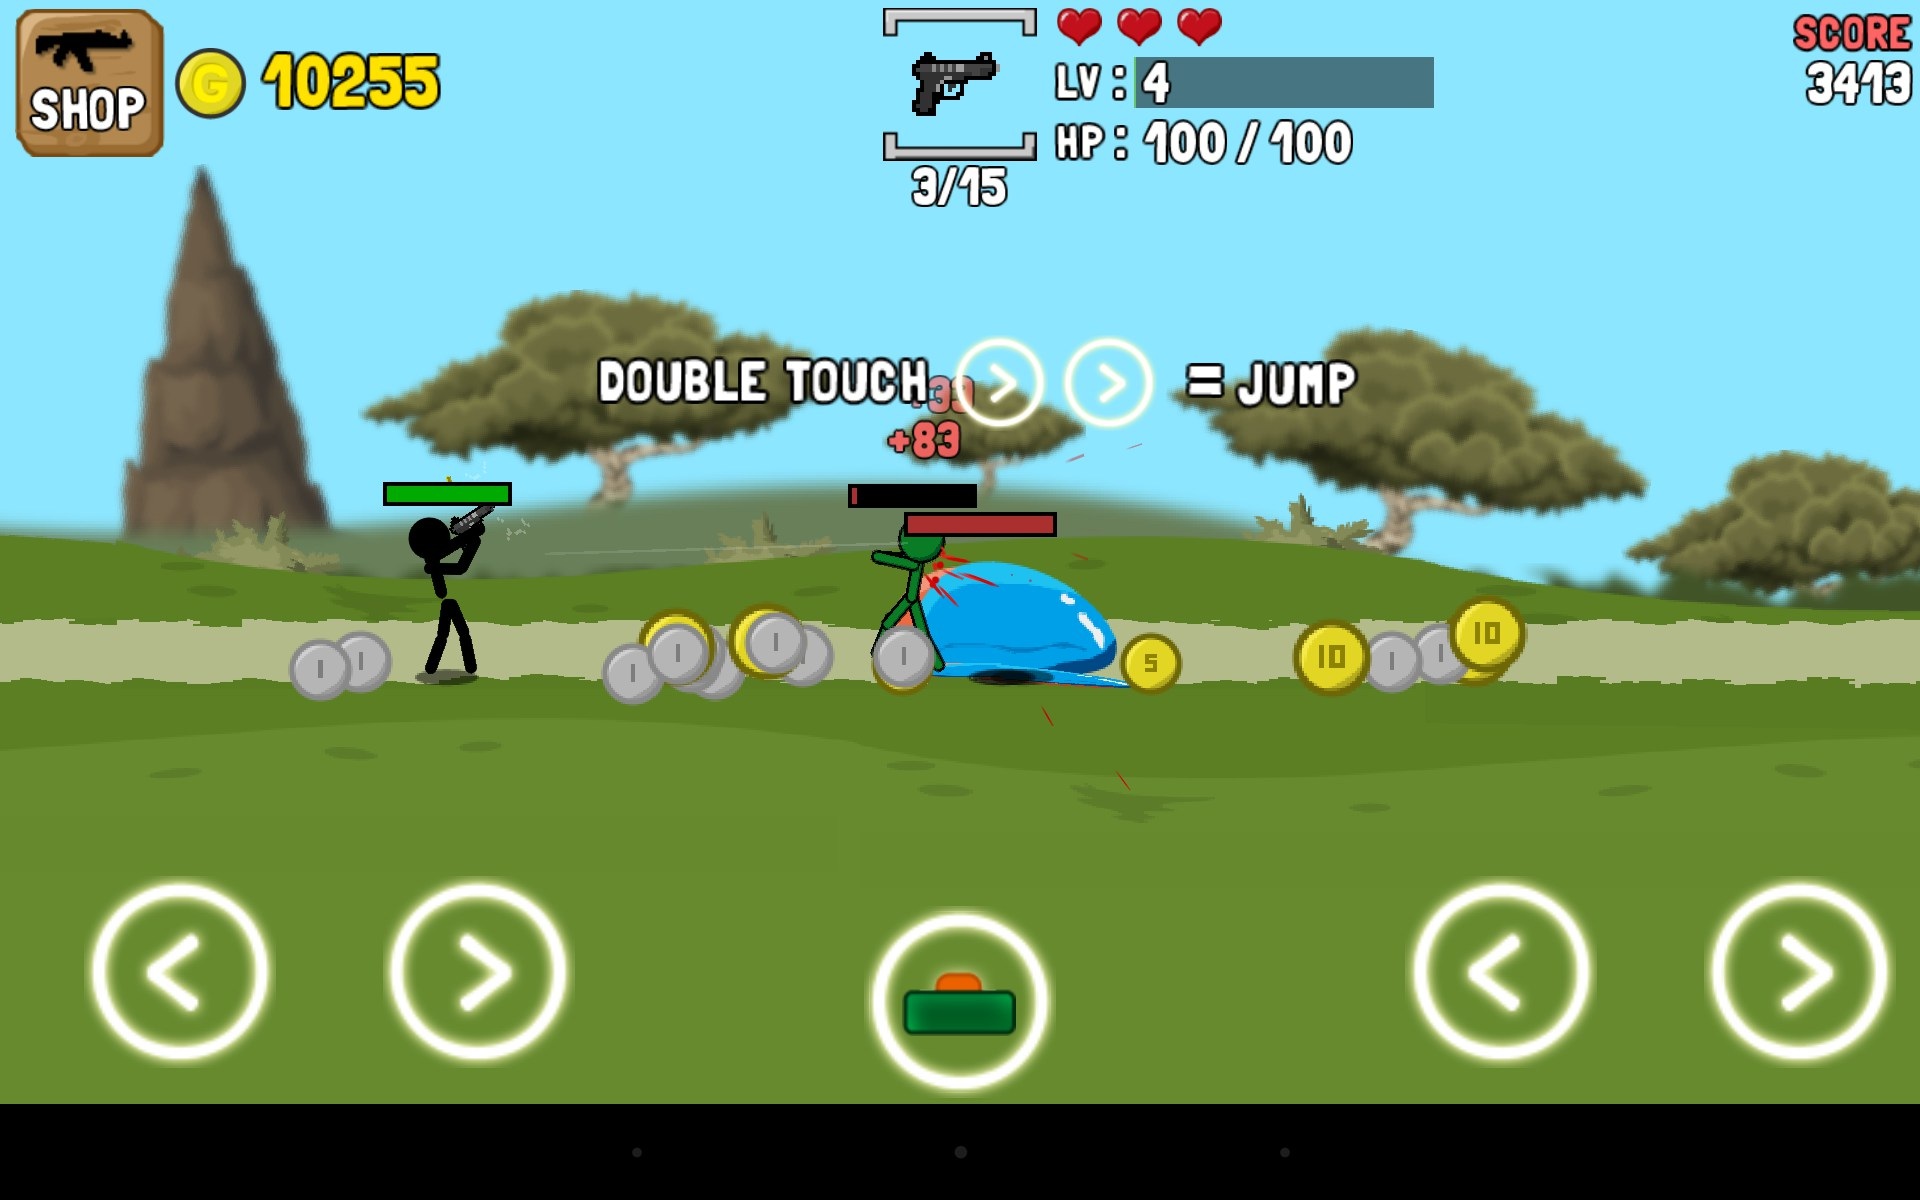 Android games weekly: top 5 weekly android games january #1.